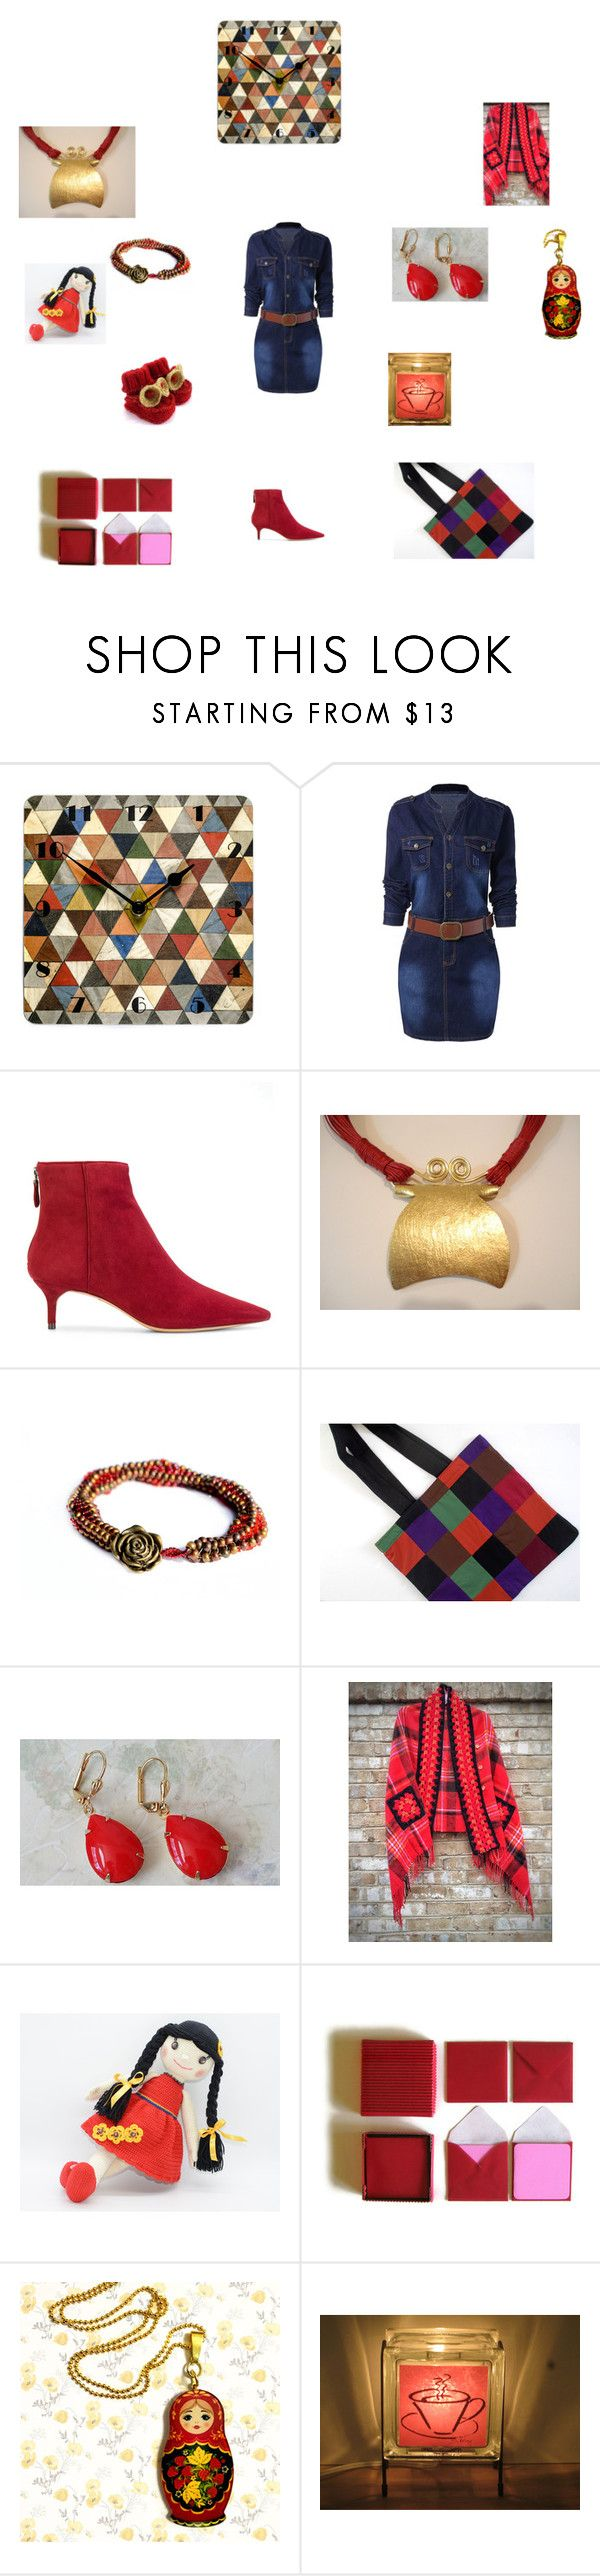 Harlequin Colours by einder on Polyvore featuring Alexandre Birman and Coffee Shop